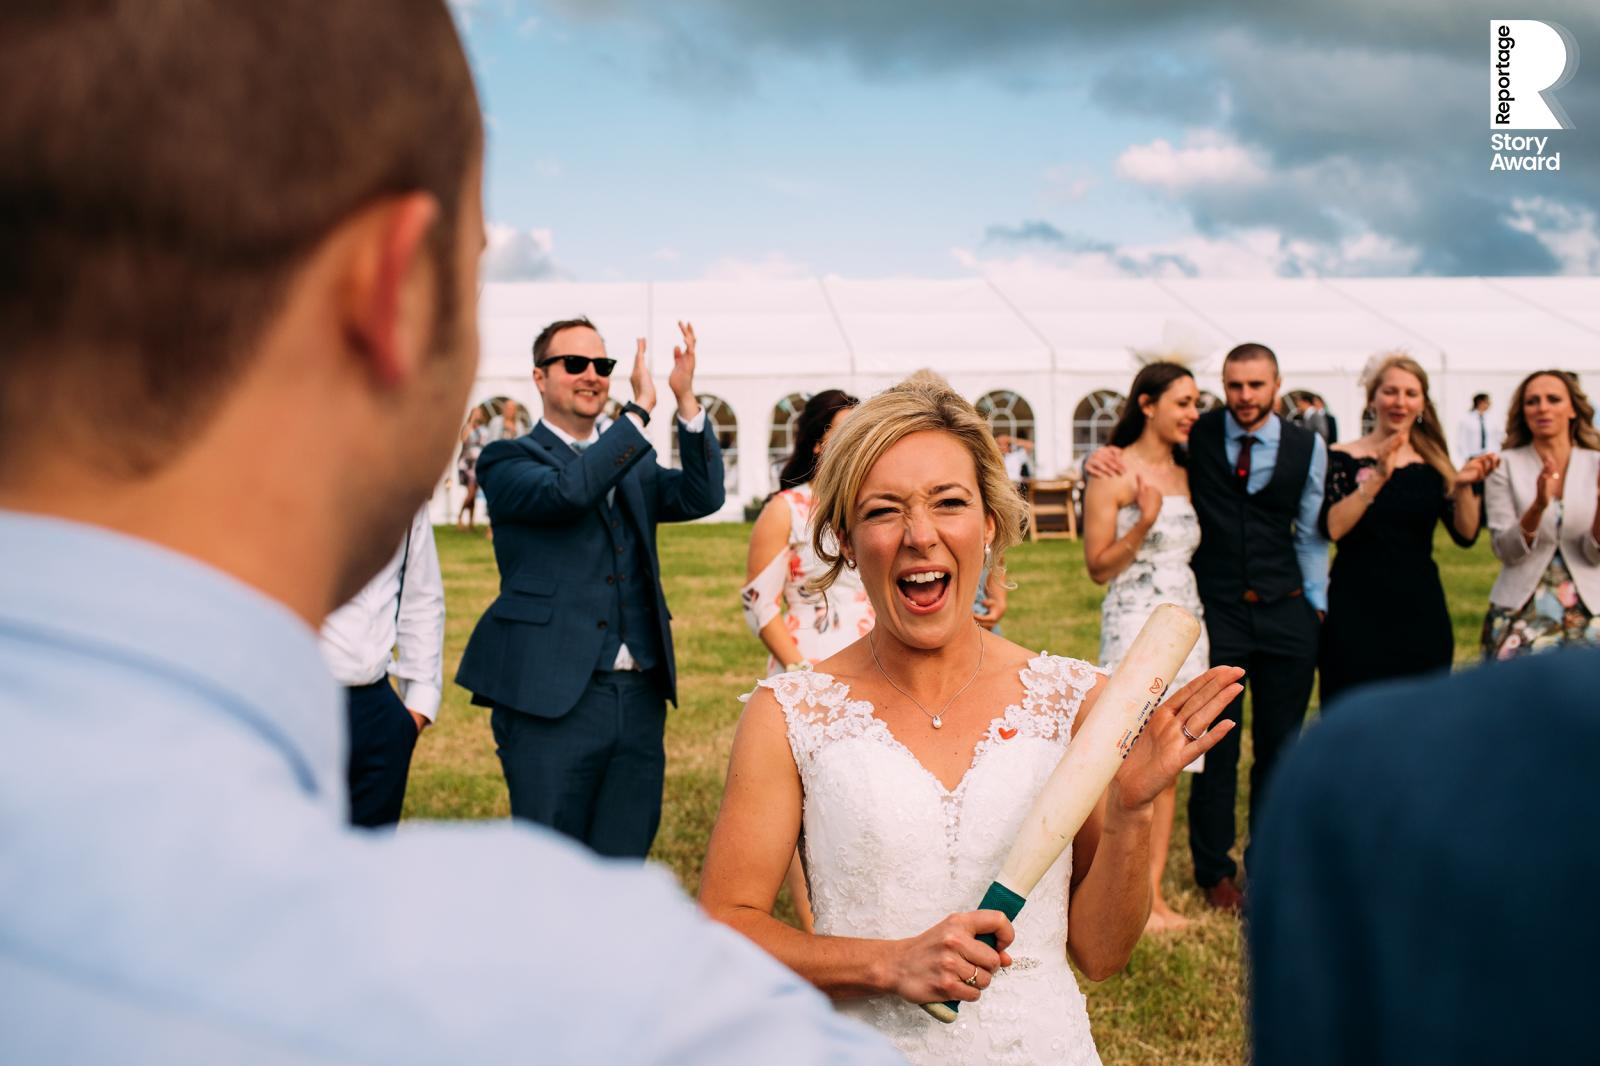 game of rounders. The bride steps up for her turn tapping the bat in her hands